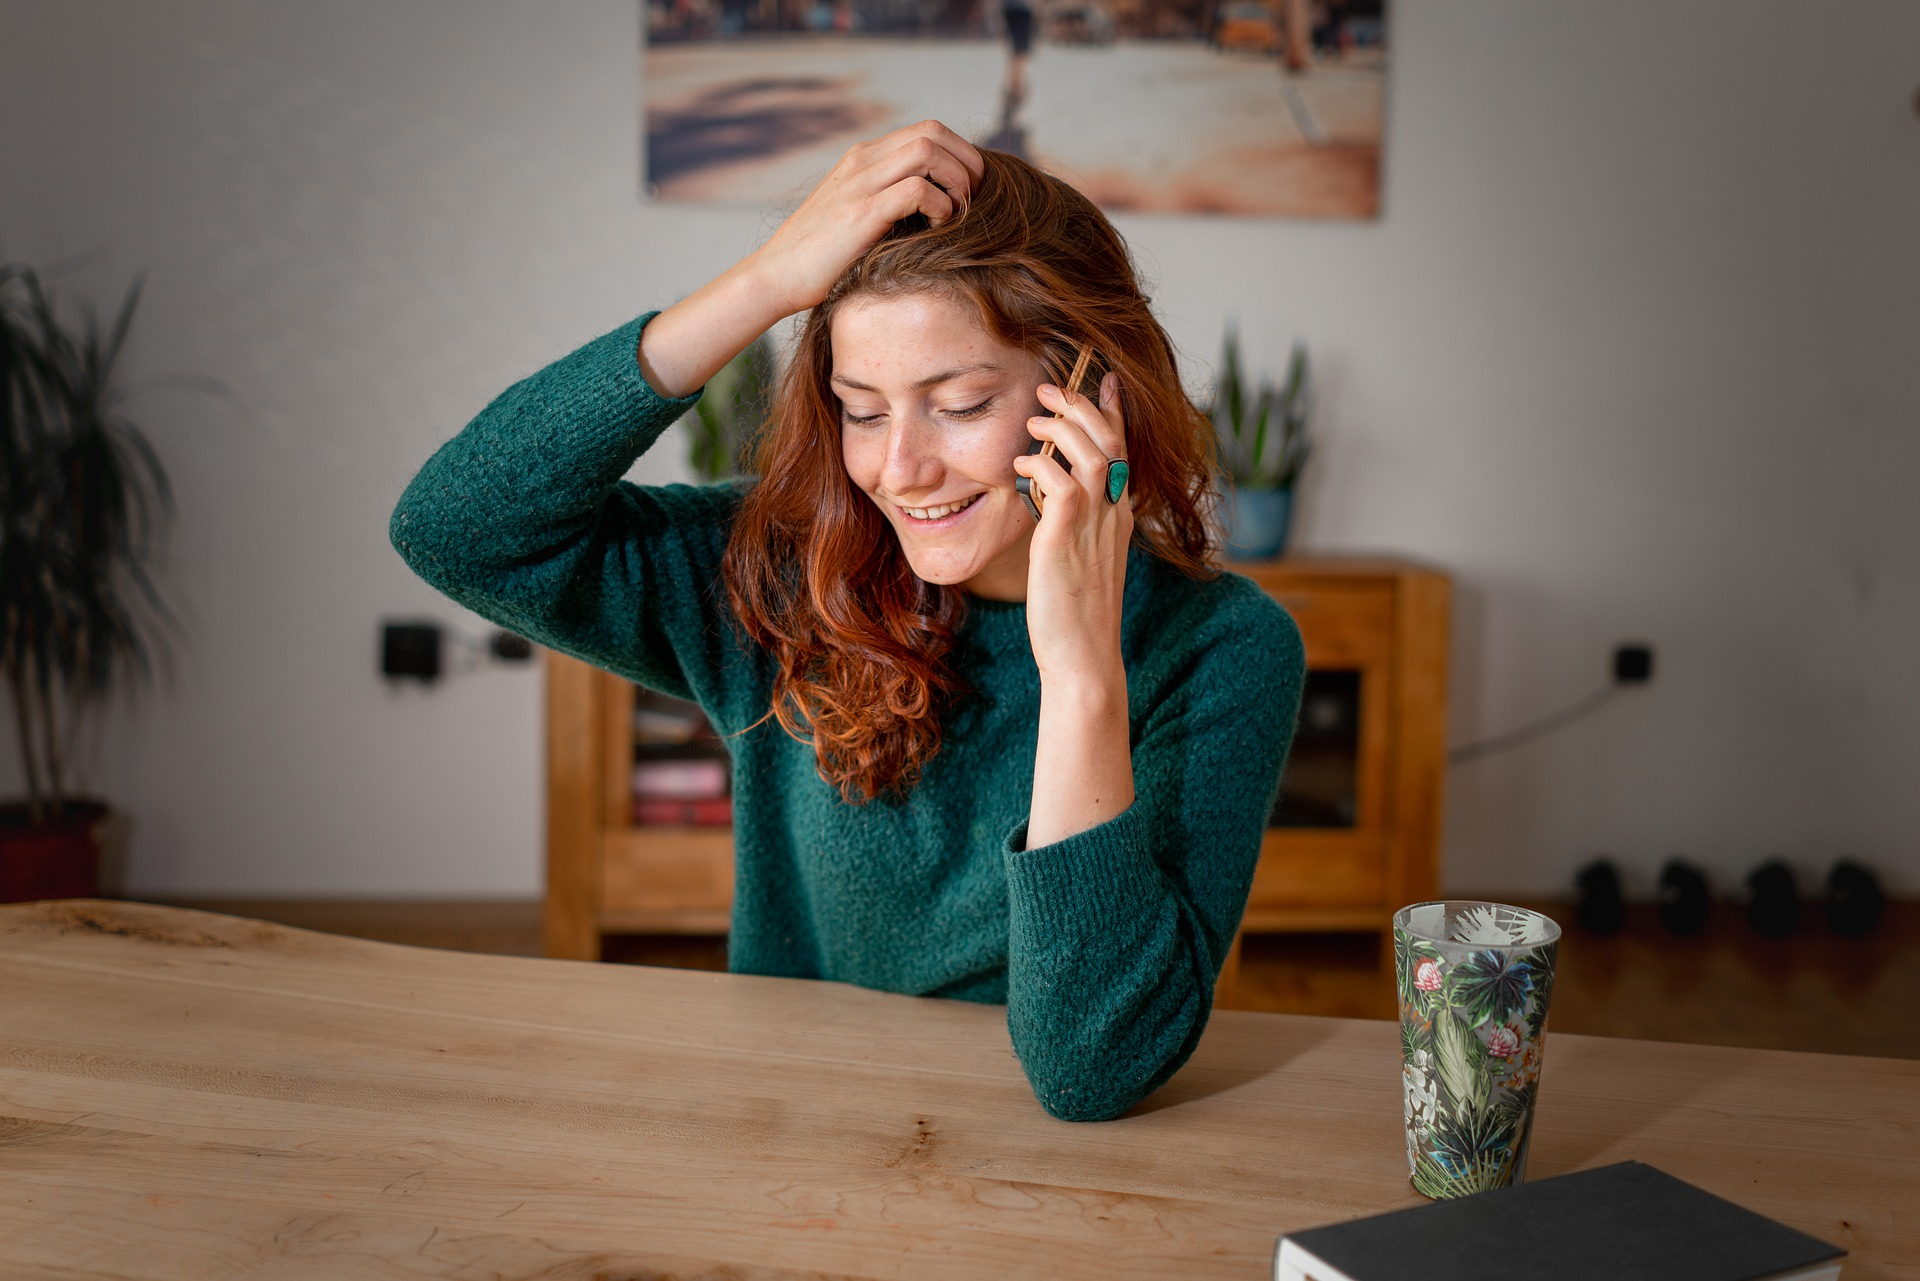 Woman in green dress talking on the phone at a table.